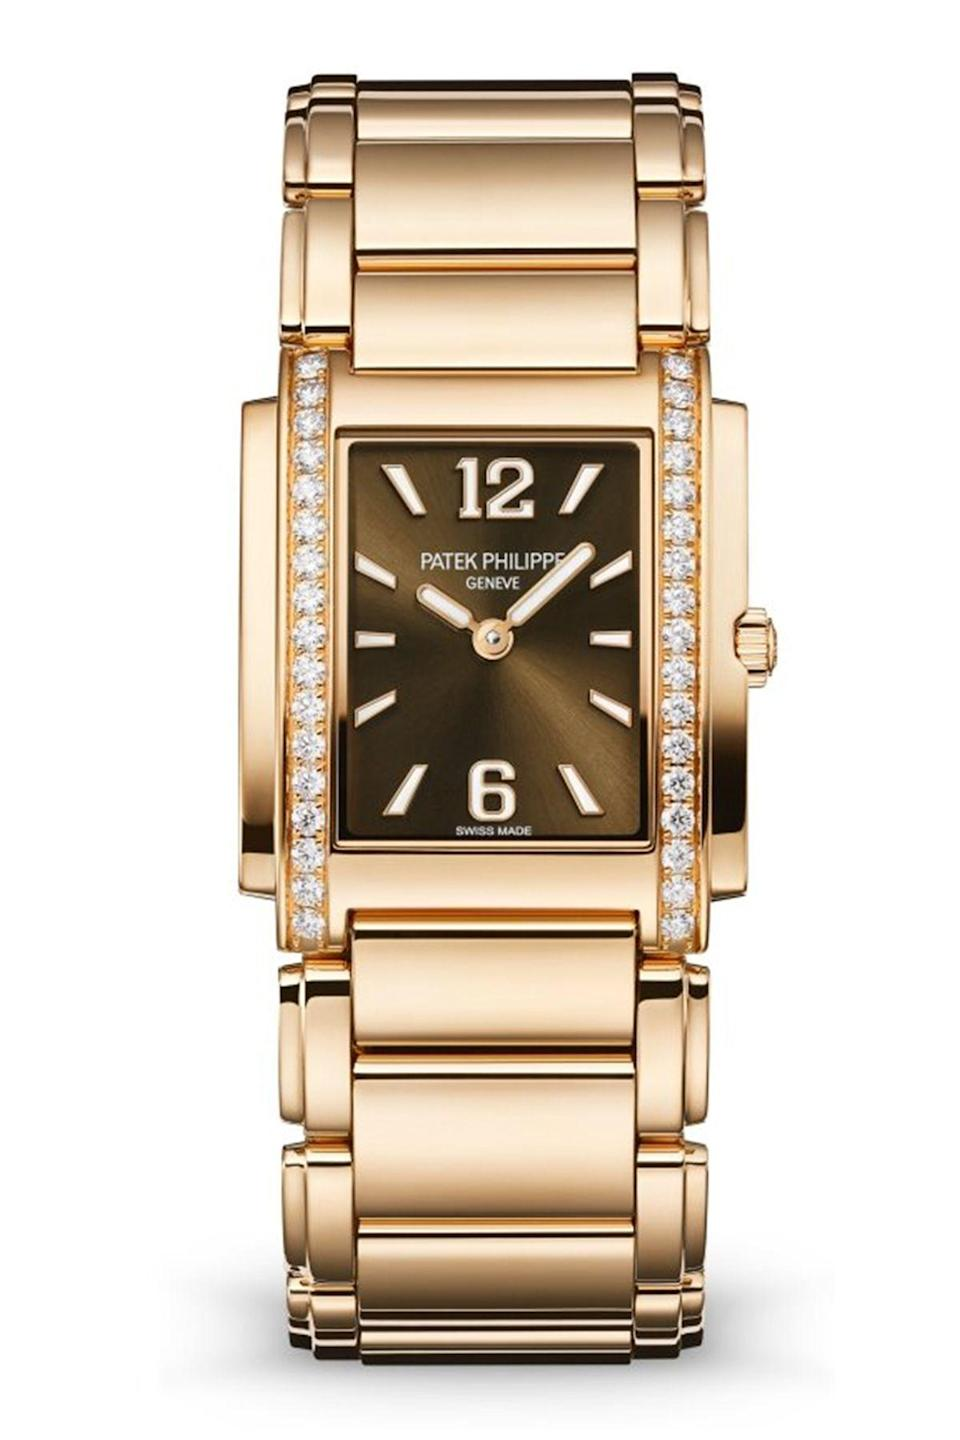 """<p><strong>Patek Philippe</strong></p><p><a href=""""https://www.patek.com/en/collection/twenty4/4910-1201R-001"""" rel=""""nofollow noopener"""" target=""""_blank"""" data-ylk=""""slk:Shop Now"""" class=""""link rapid-noclick-resp"""">Shop Now</a></p><p>A classic silhouette in an updated color-way, for those who want to make a statement. </p>"""